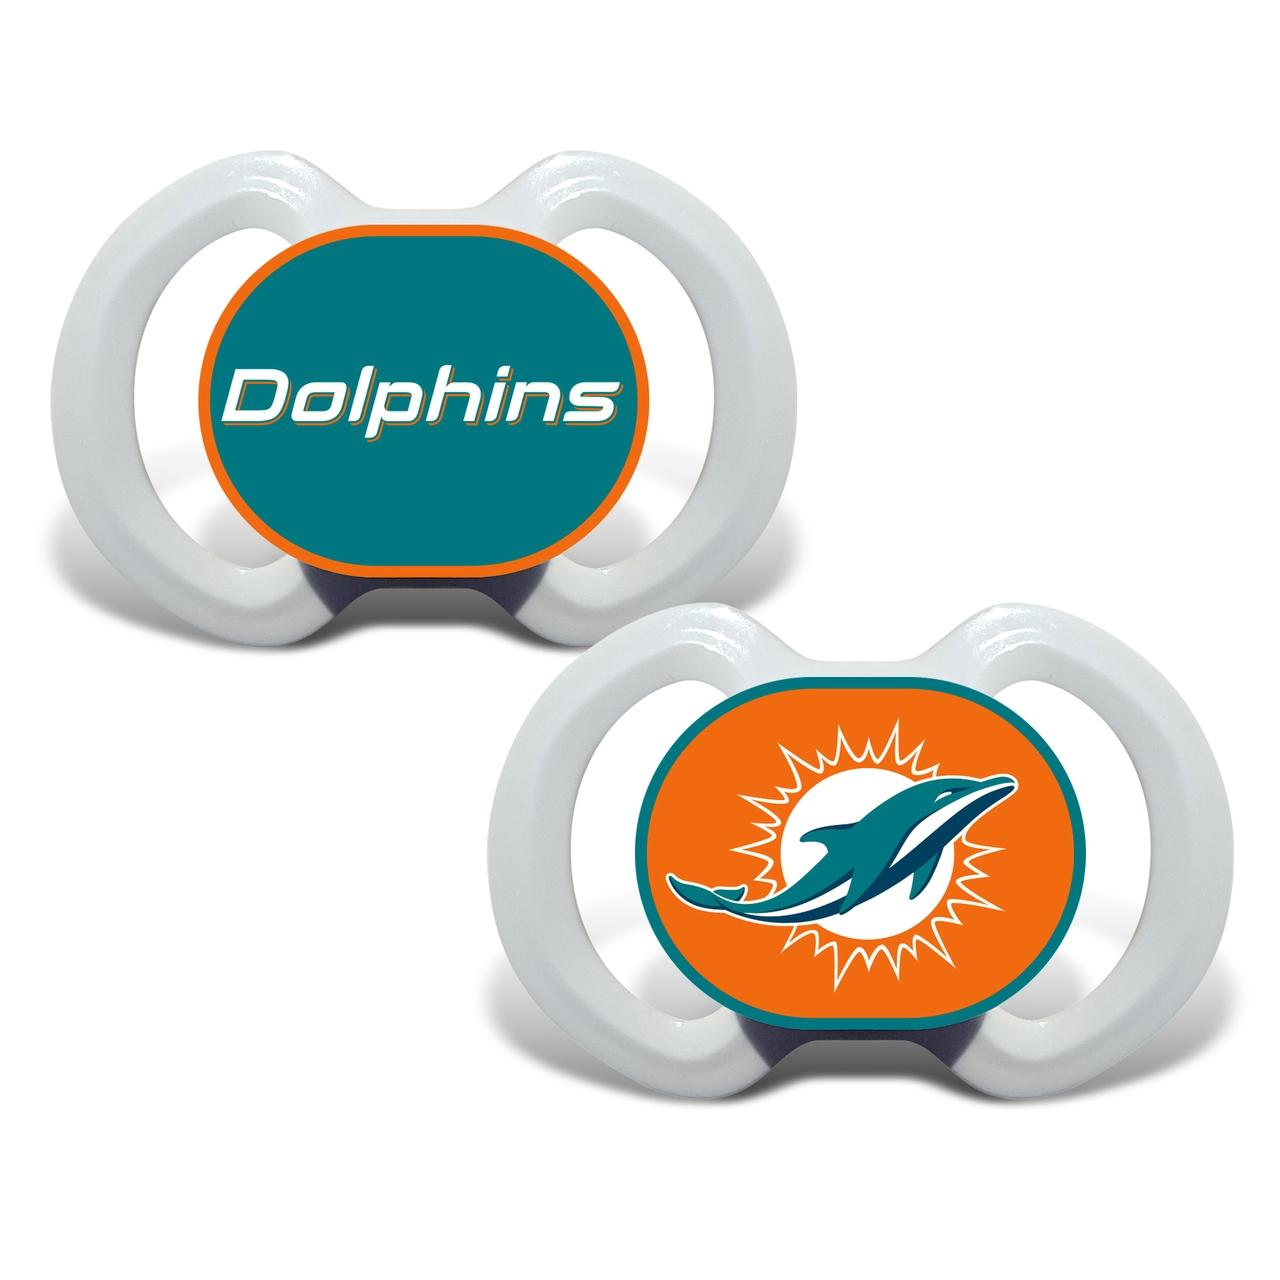 Nfl Football Miami Dolphins Baby Fan Gear - 1740702230 - Miami Dolphins Pacifier 2 Pack 1740702230